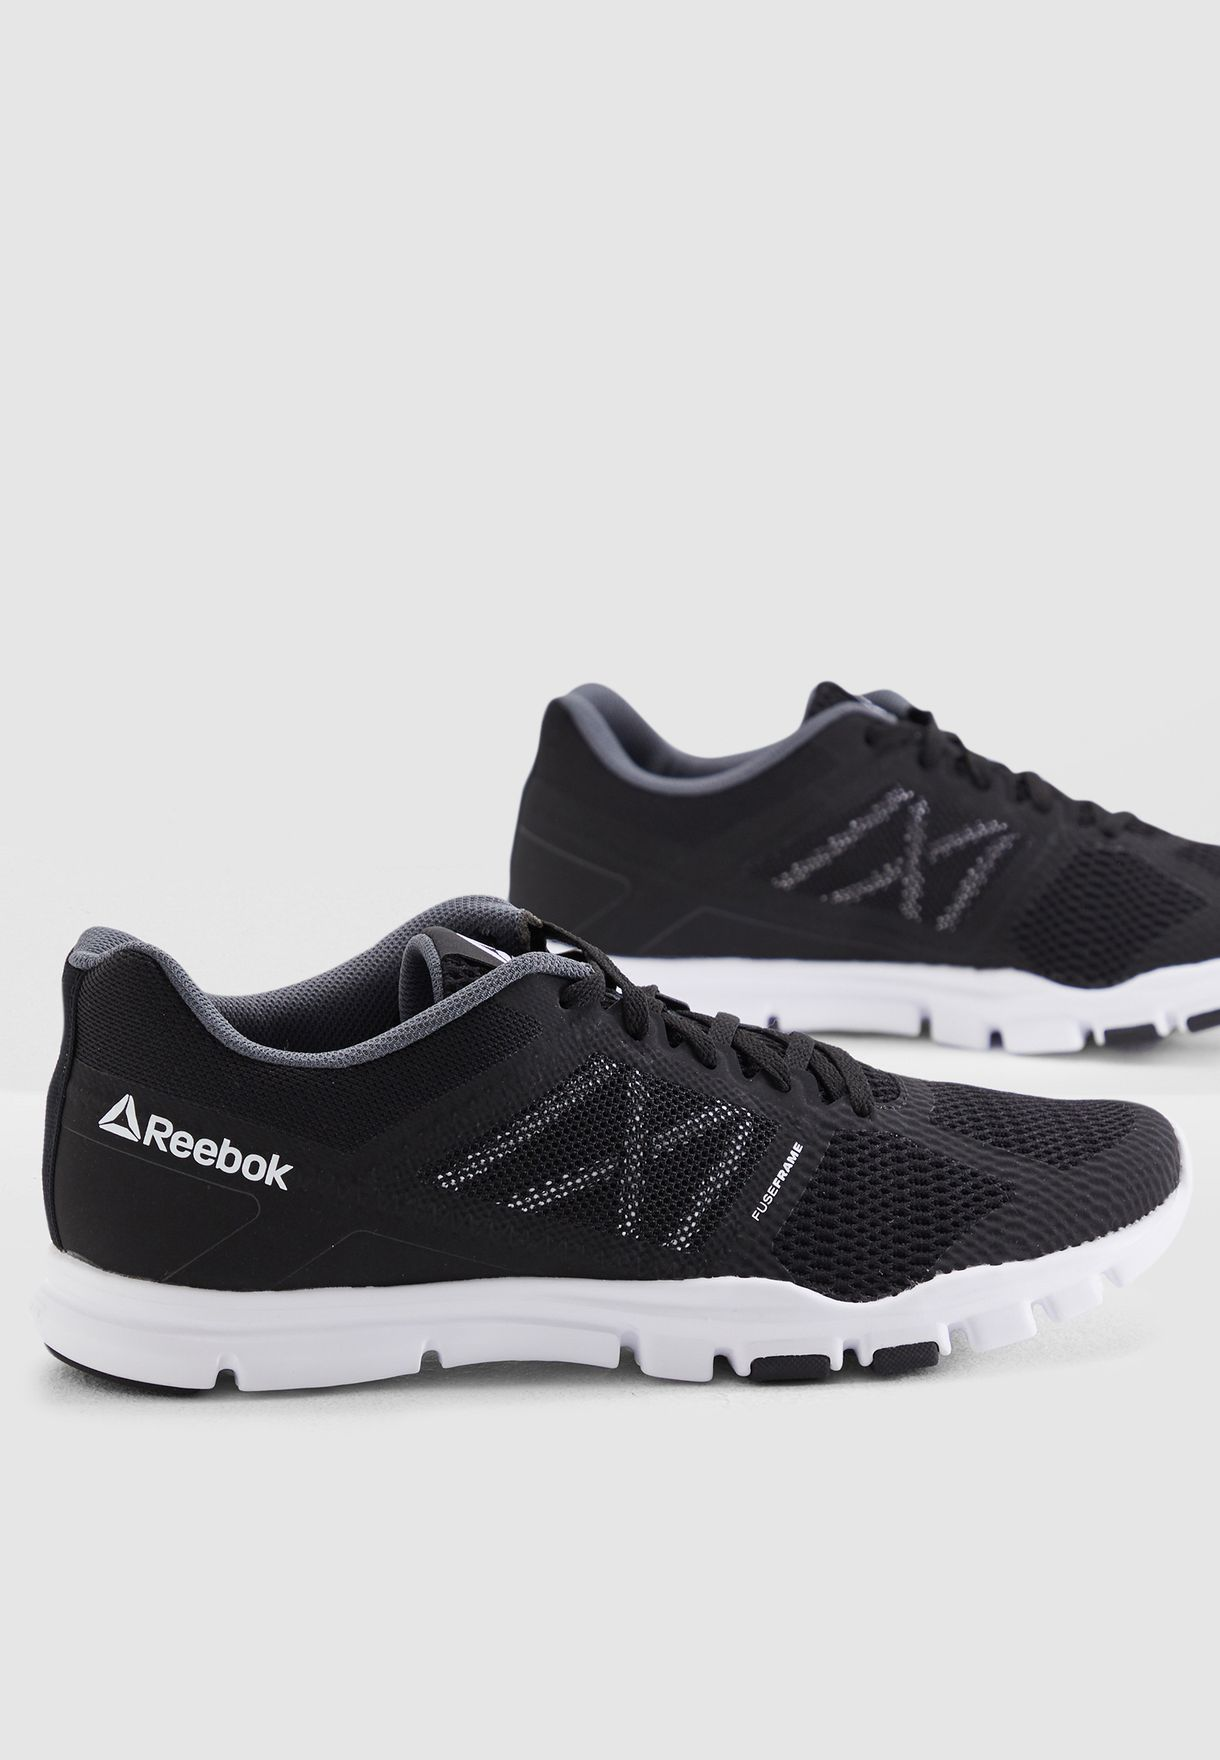 b4c04880c4c180 Shop Reebok black Yourflex Train 11 DV4759 for Men in UAE - 19000SH14LBP